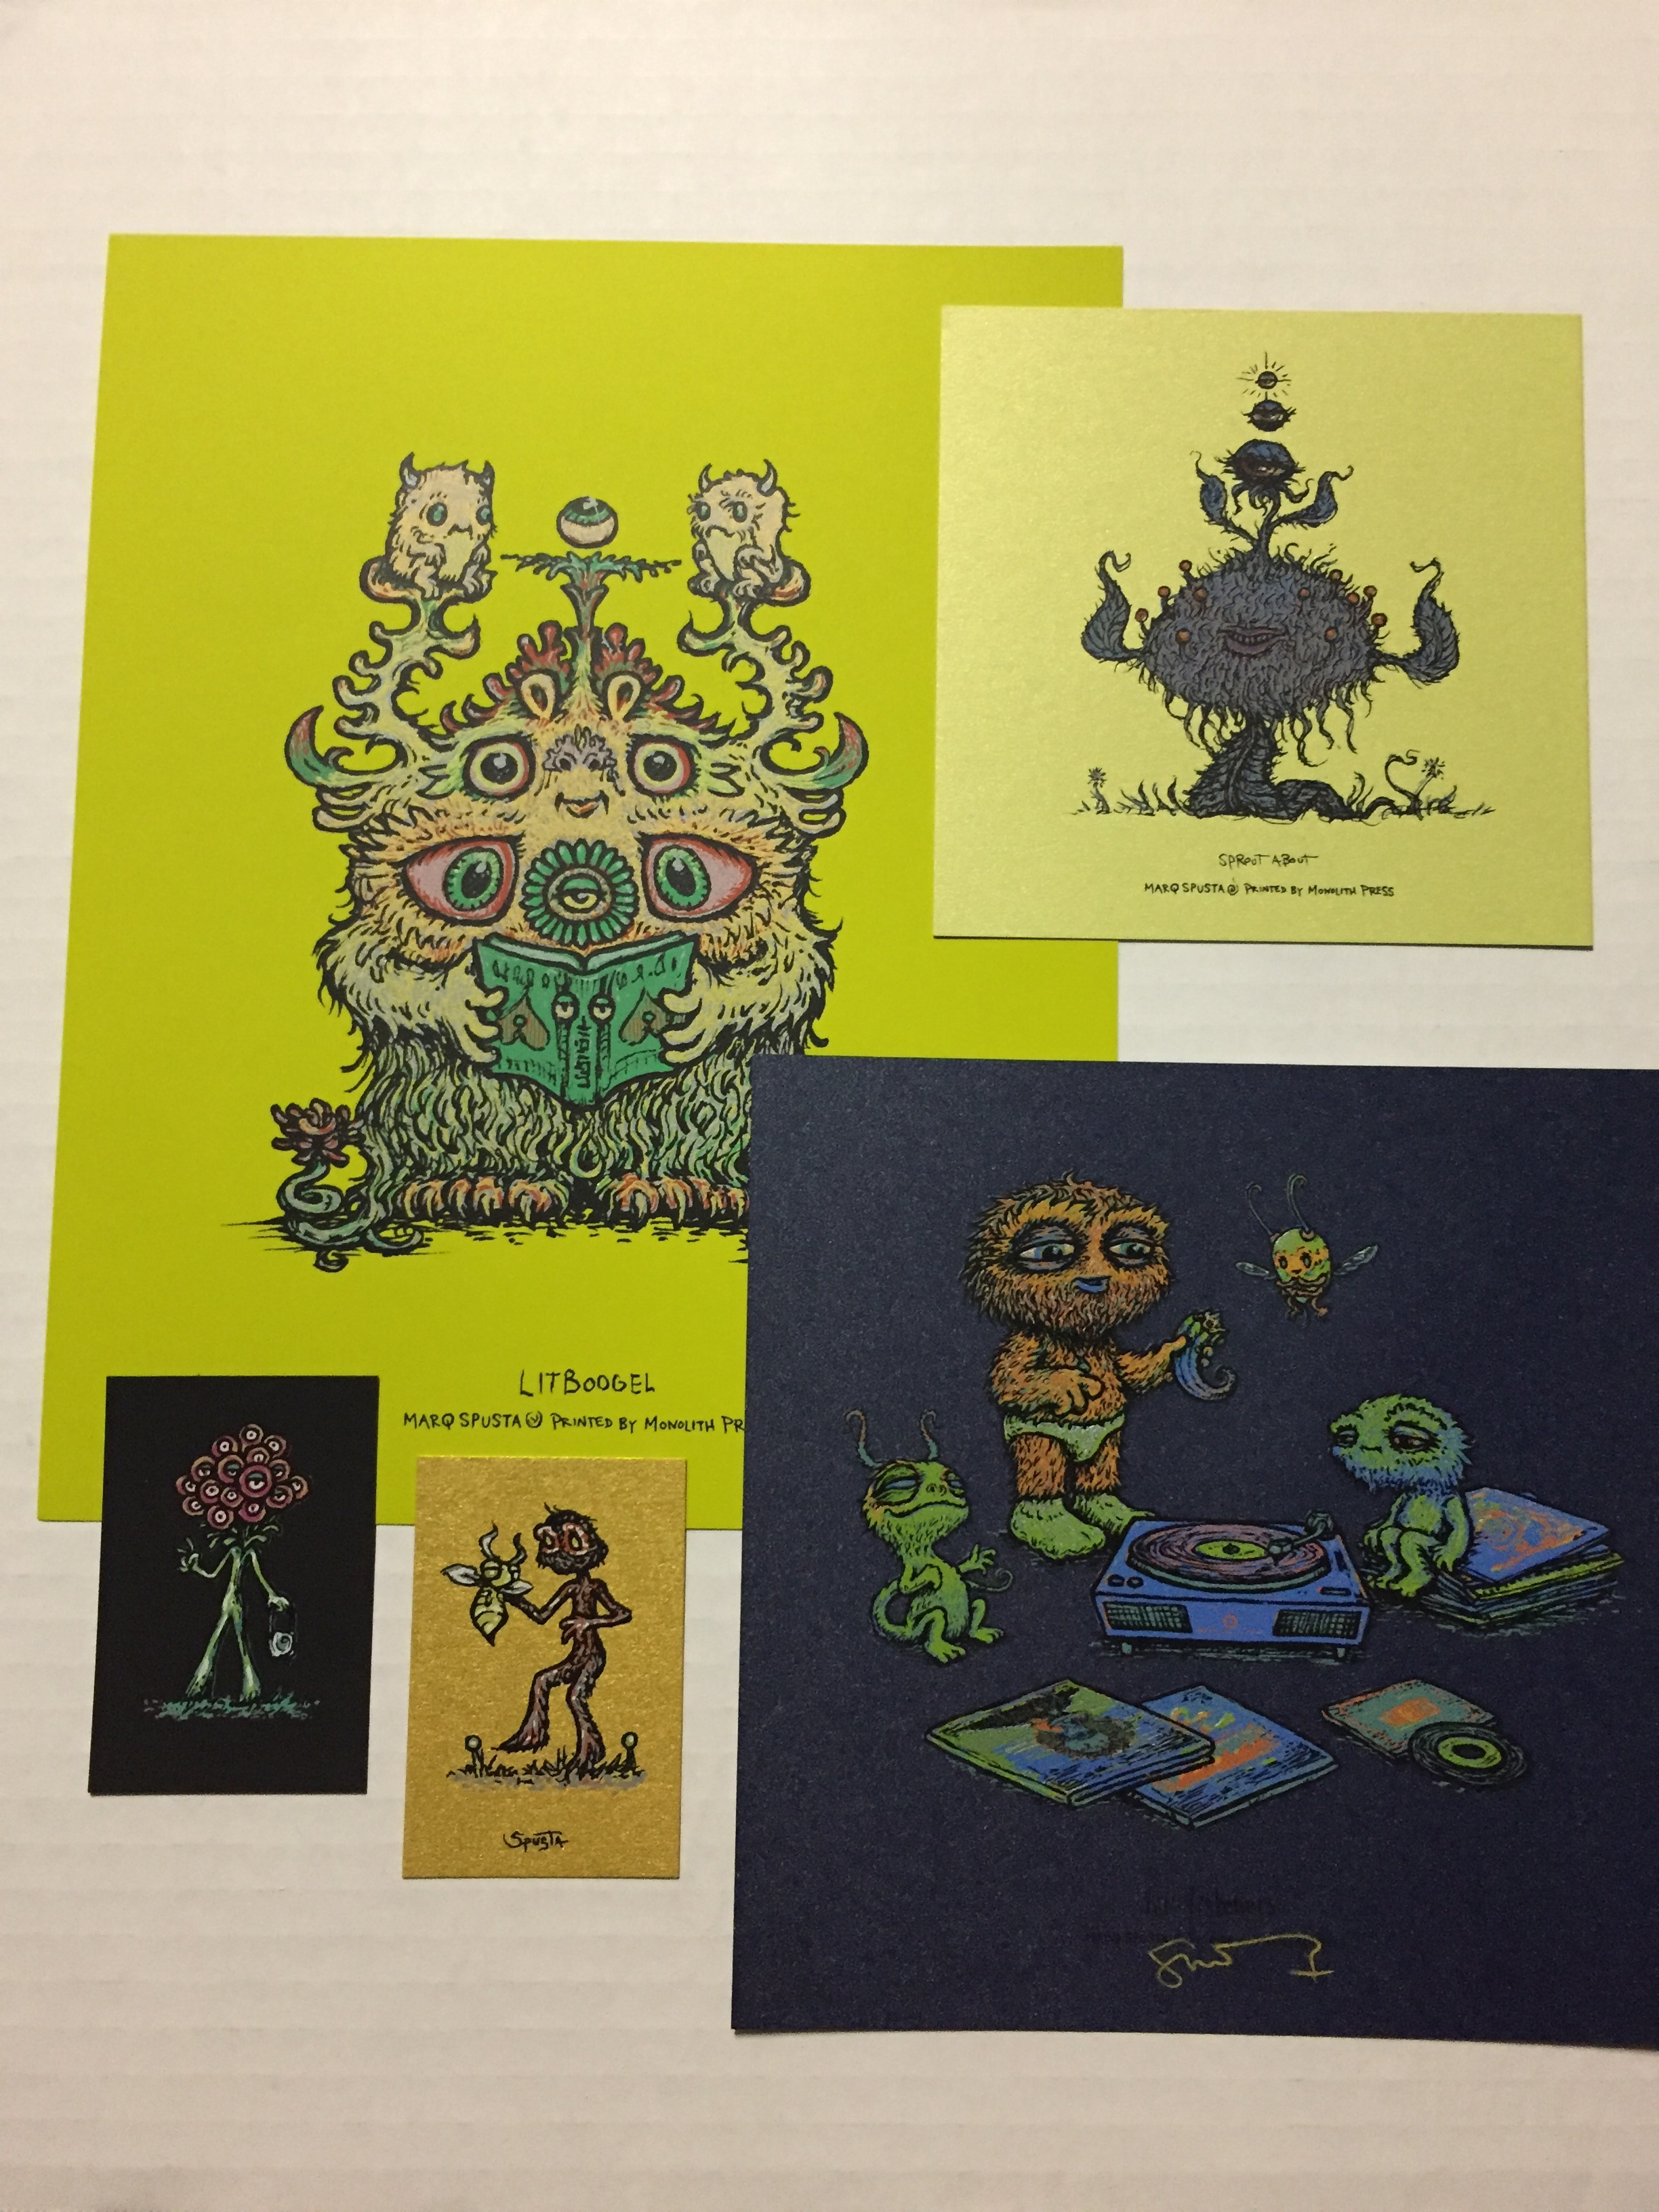 """Absinthe Variant Litboogel 8"""" x 10"""" + Blue Shimmer Lil Listeners 7"""" x 7"""" + minis pictured"""